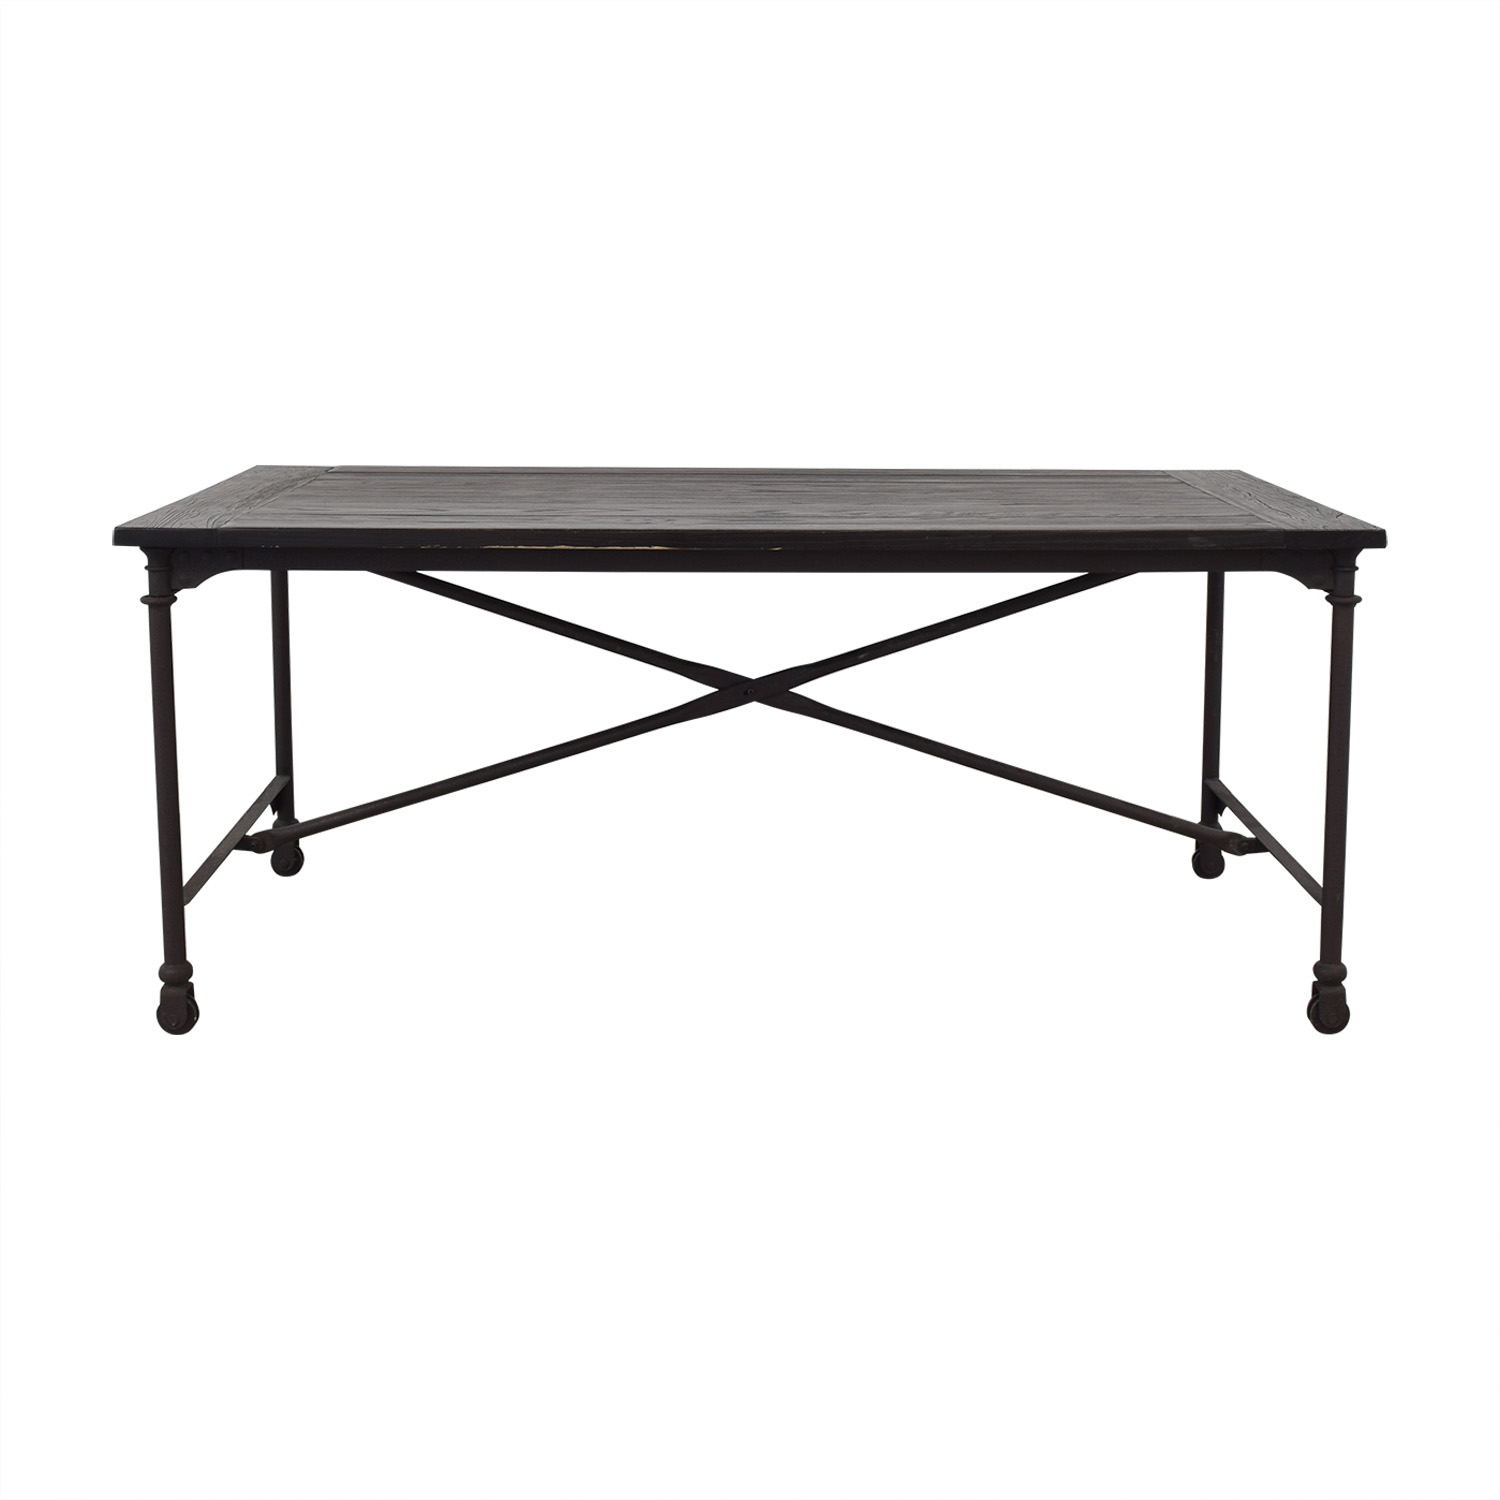 Restoration Hardware Flatiron Desk sale